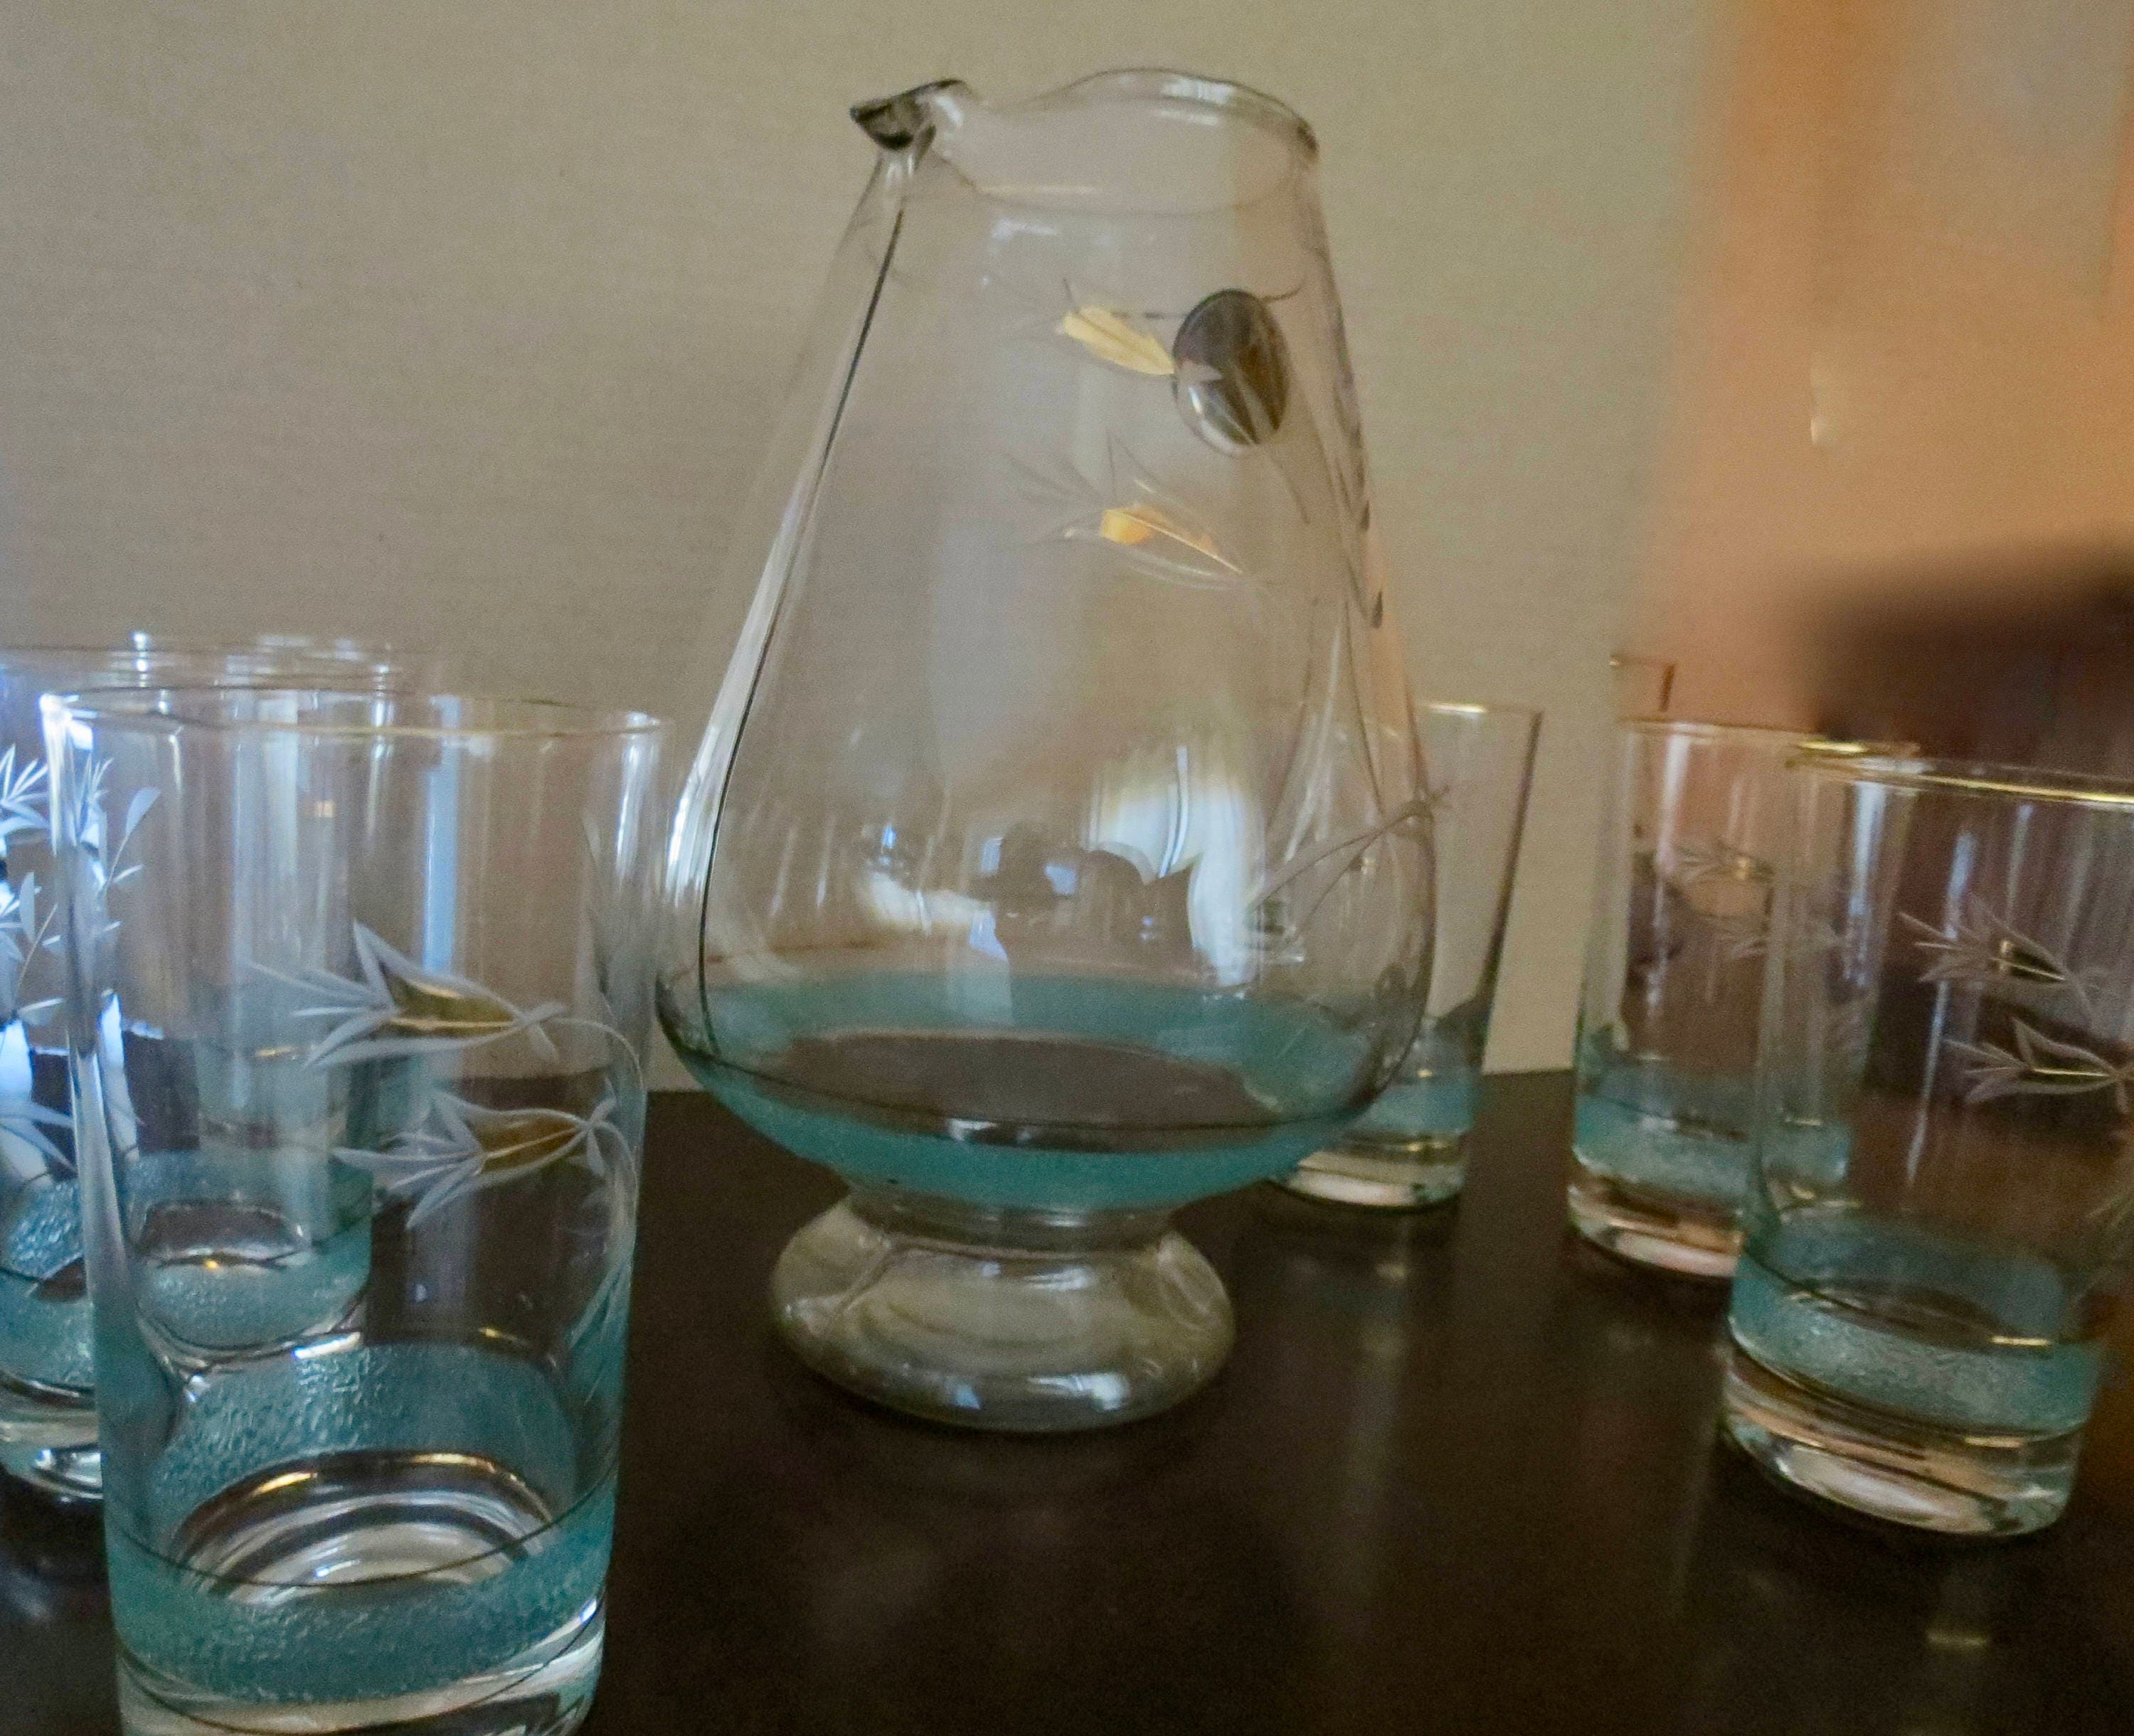 Image 1 of Vintage Pitcher Set - Mid Century Turquoise and Gold Graphics, Pitcher with Six